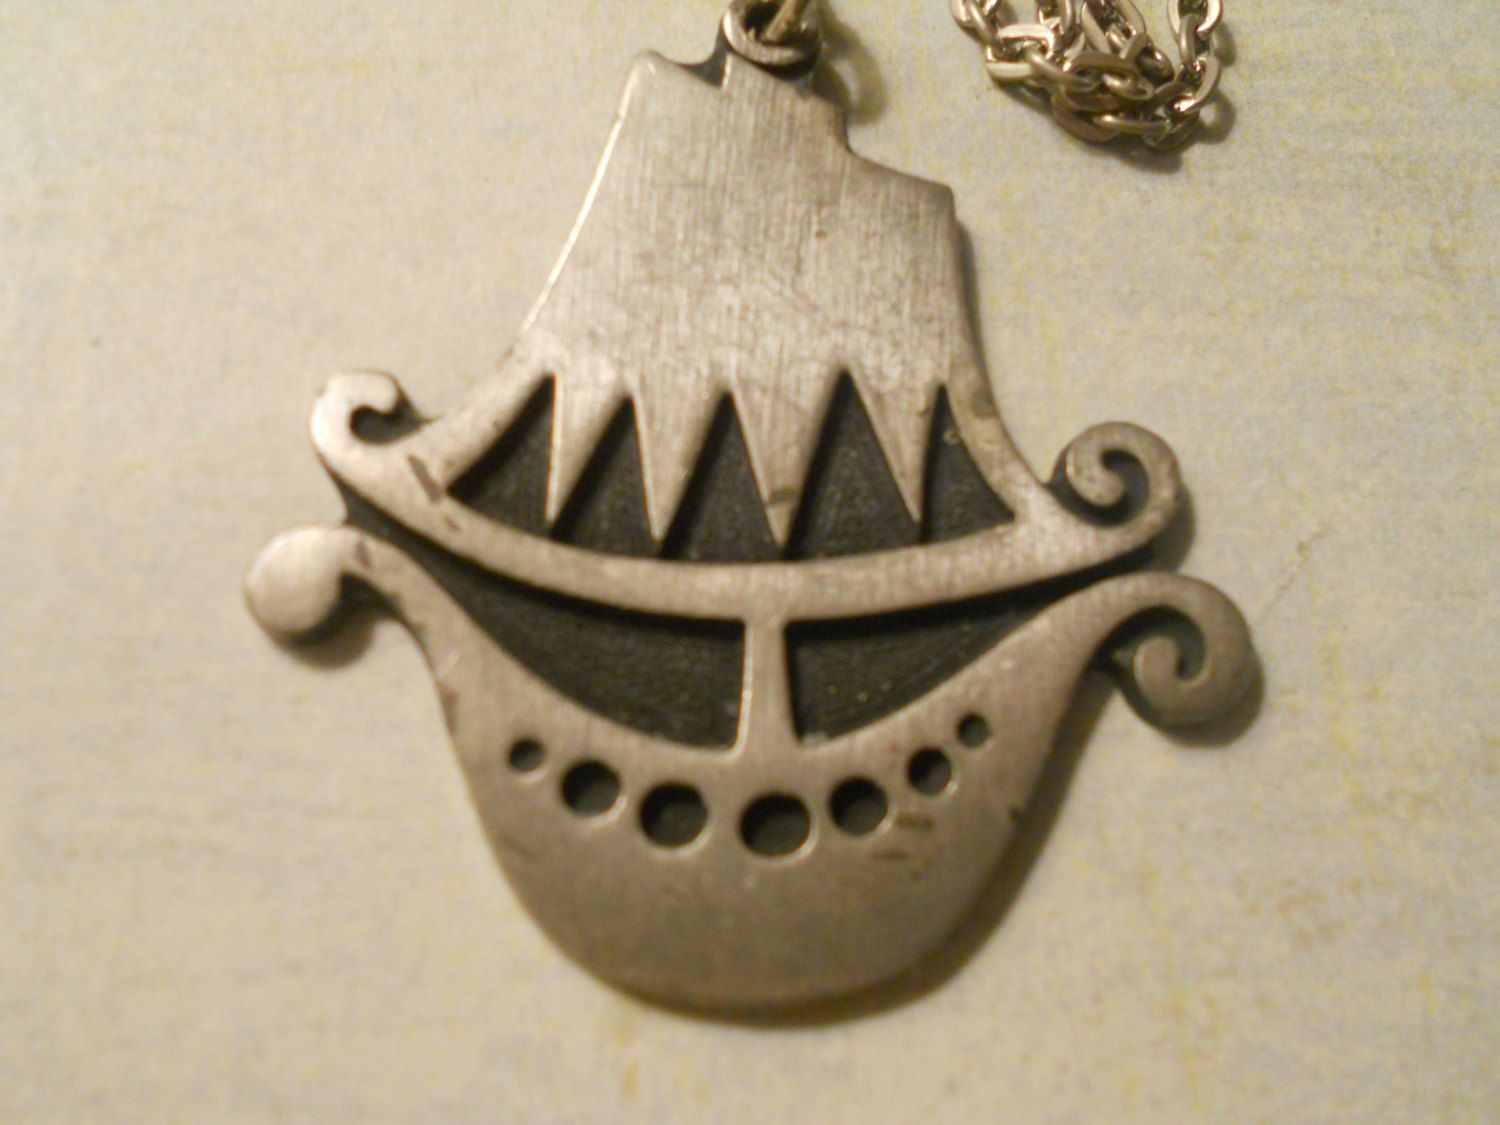 R tennesmed clipper ship pendant necklace beautiful and rare item